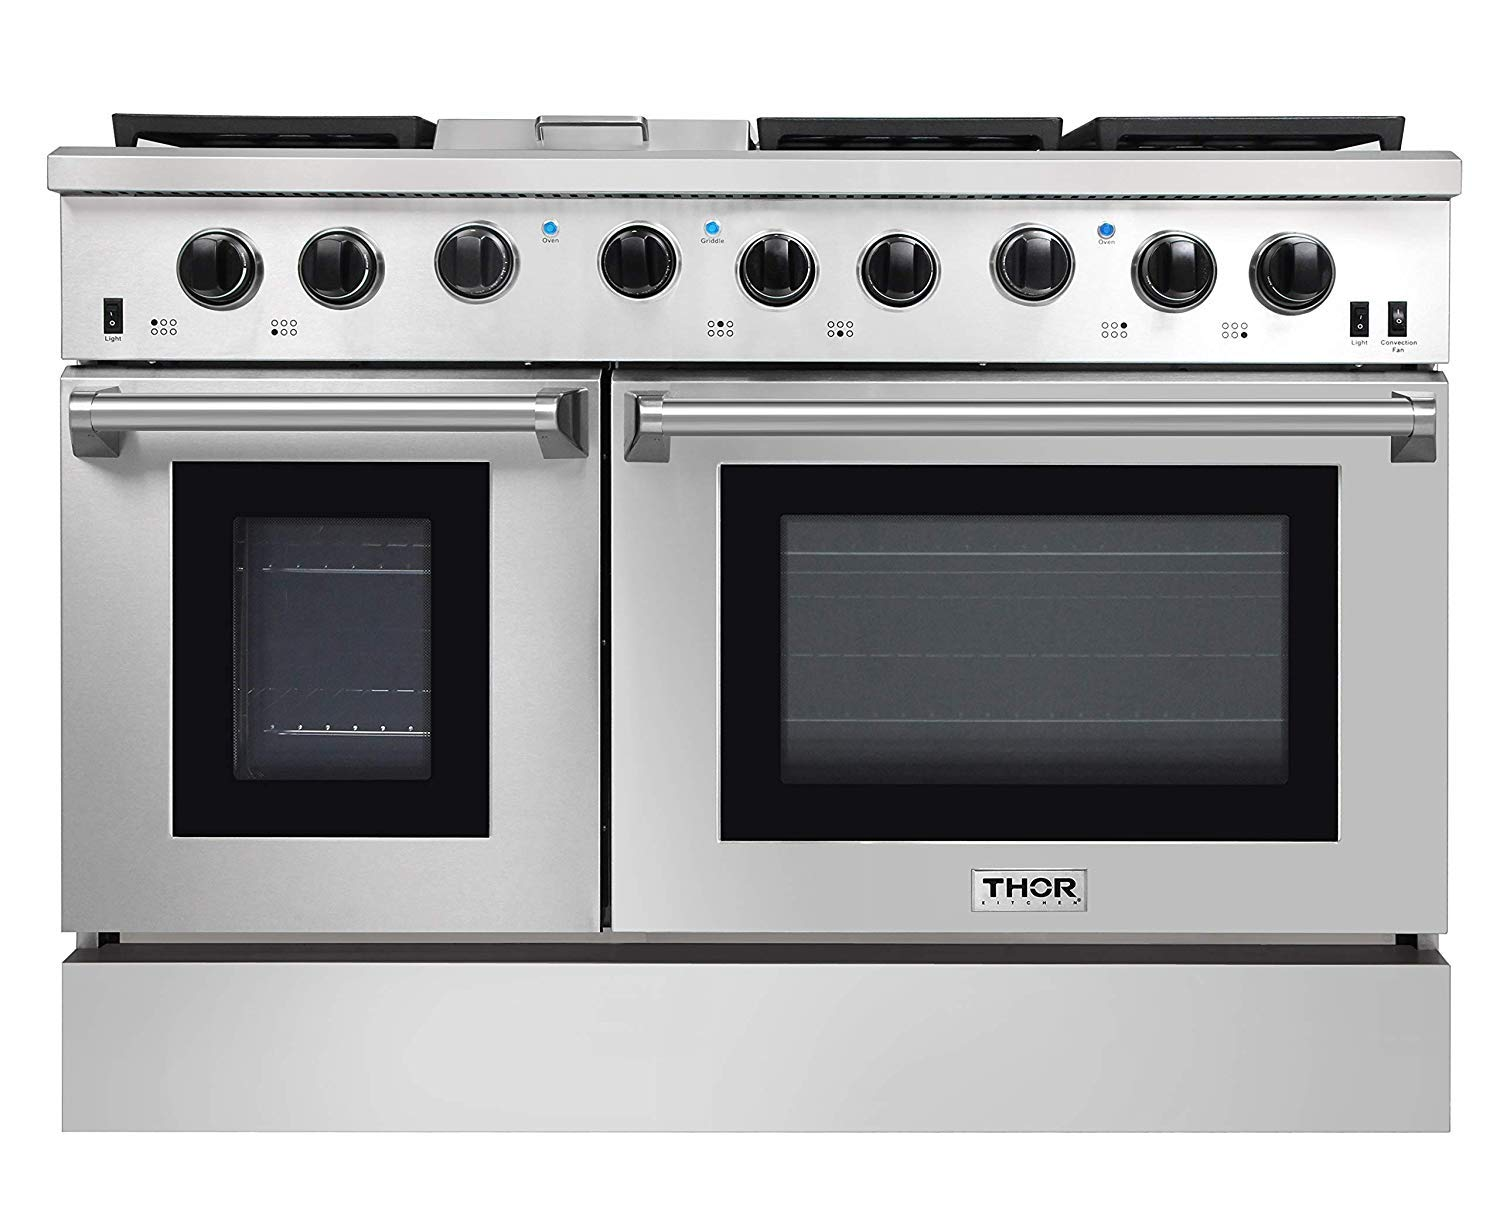 """Thor Kitchen 48"""" Freestanding Professional Gas Range with 6 Burners Cooktop, 1 Griddle and 6.8 cu.ft Oven - Stainless Steel -With LP Conversion Kit"""